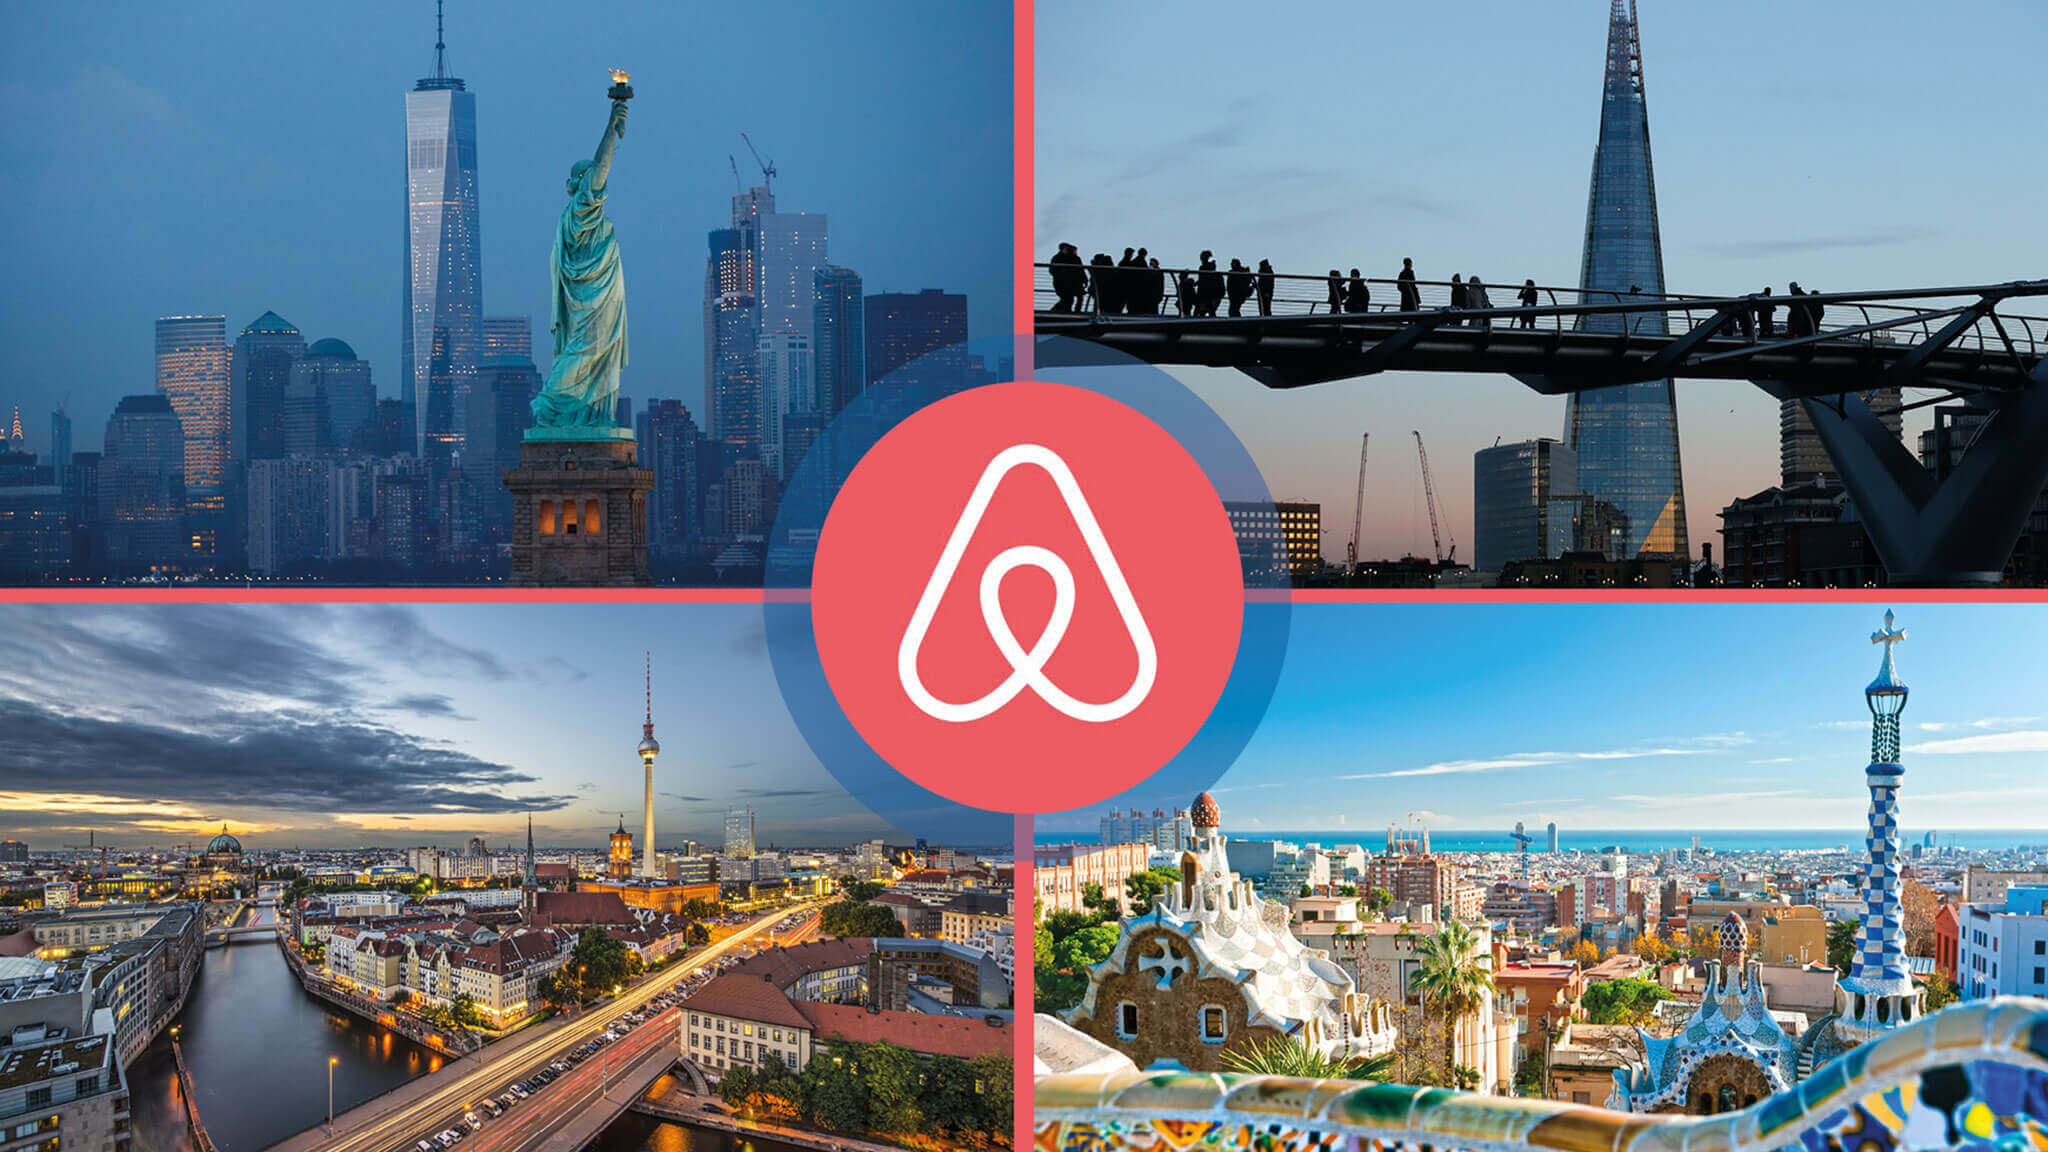 Airbnb And The Hotel Industry: 3 Lessons to Level The Playing Field